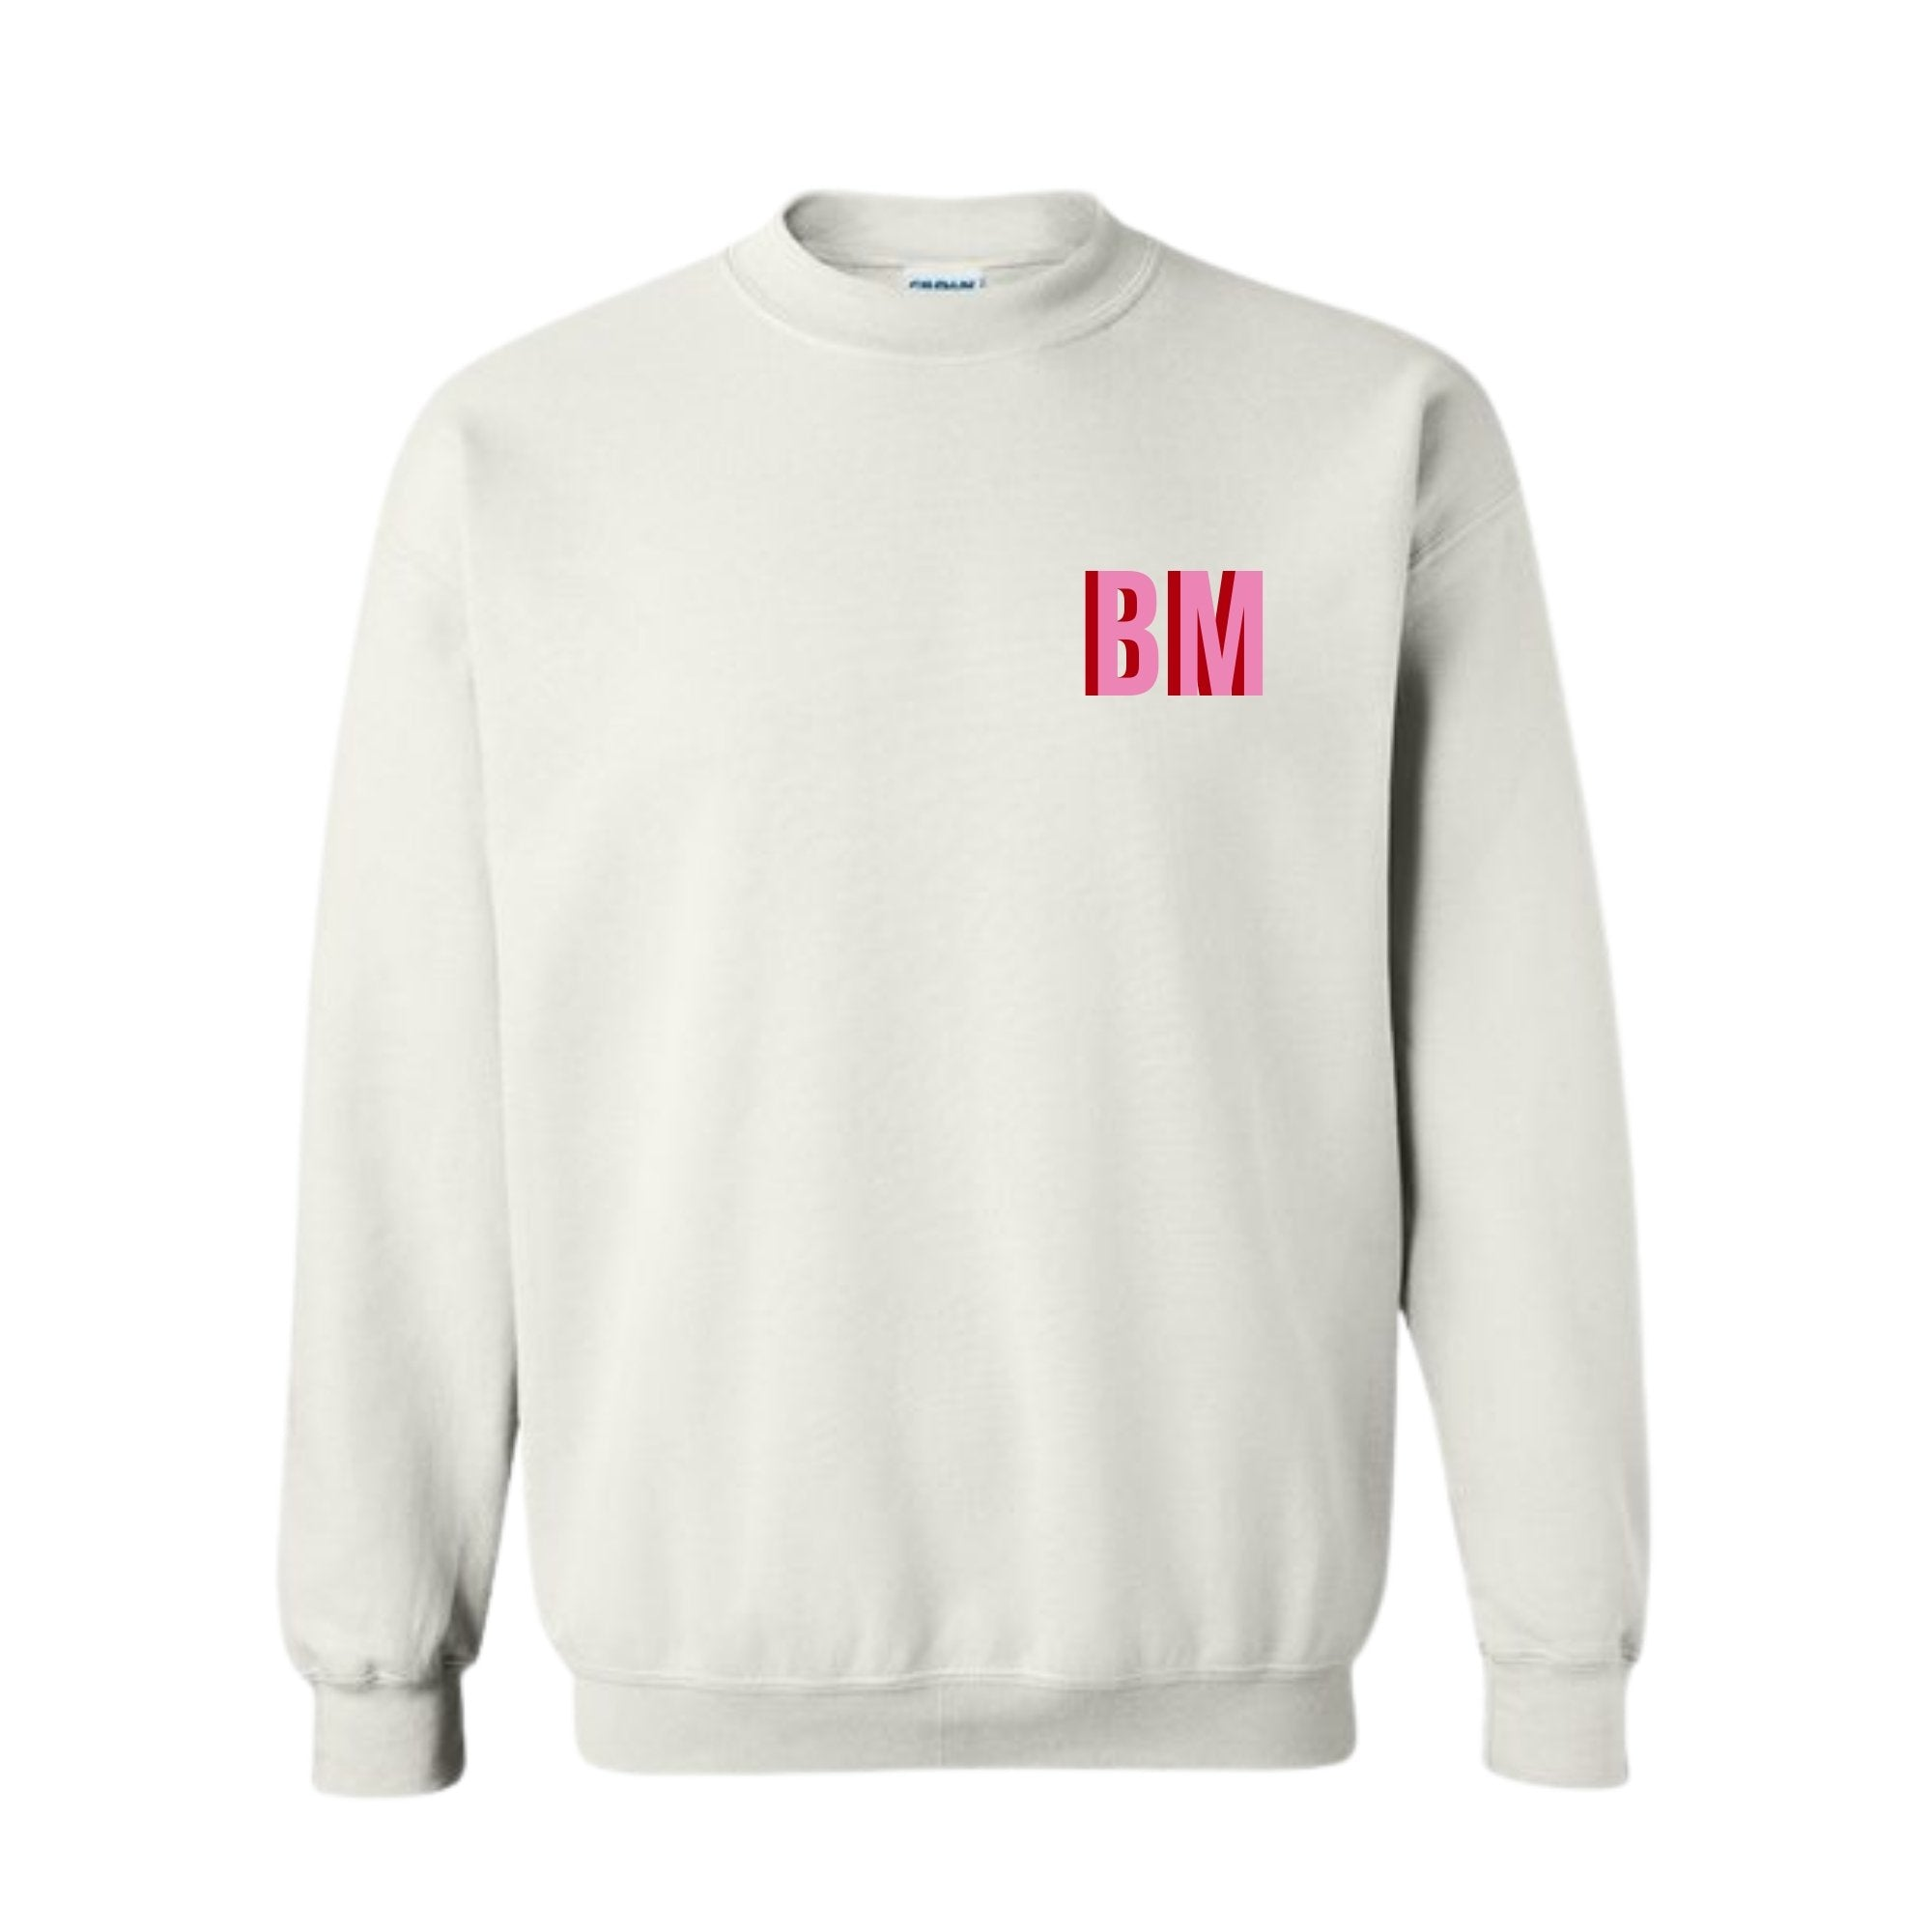 Monogram Sweatshirt - Sprinkled With Pink #bachelorette #custom #gifts